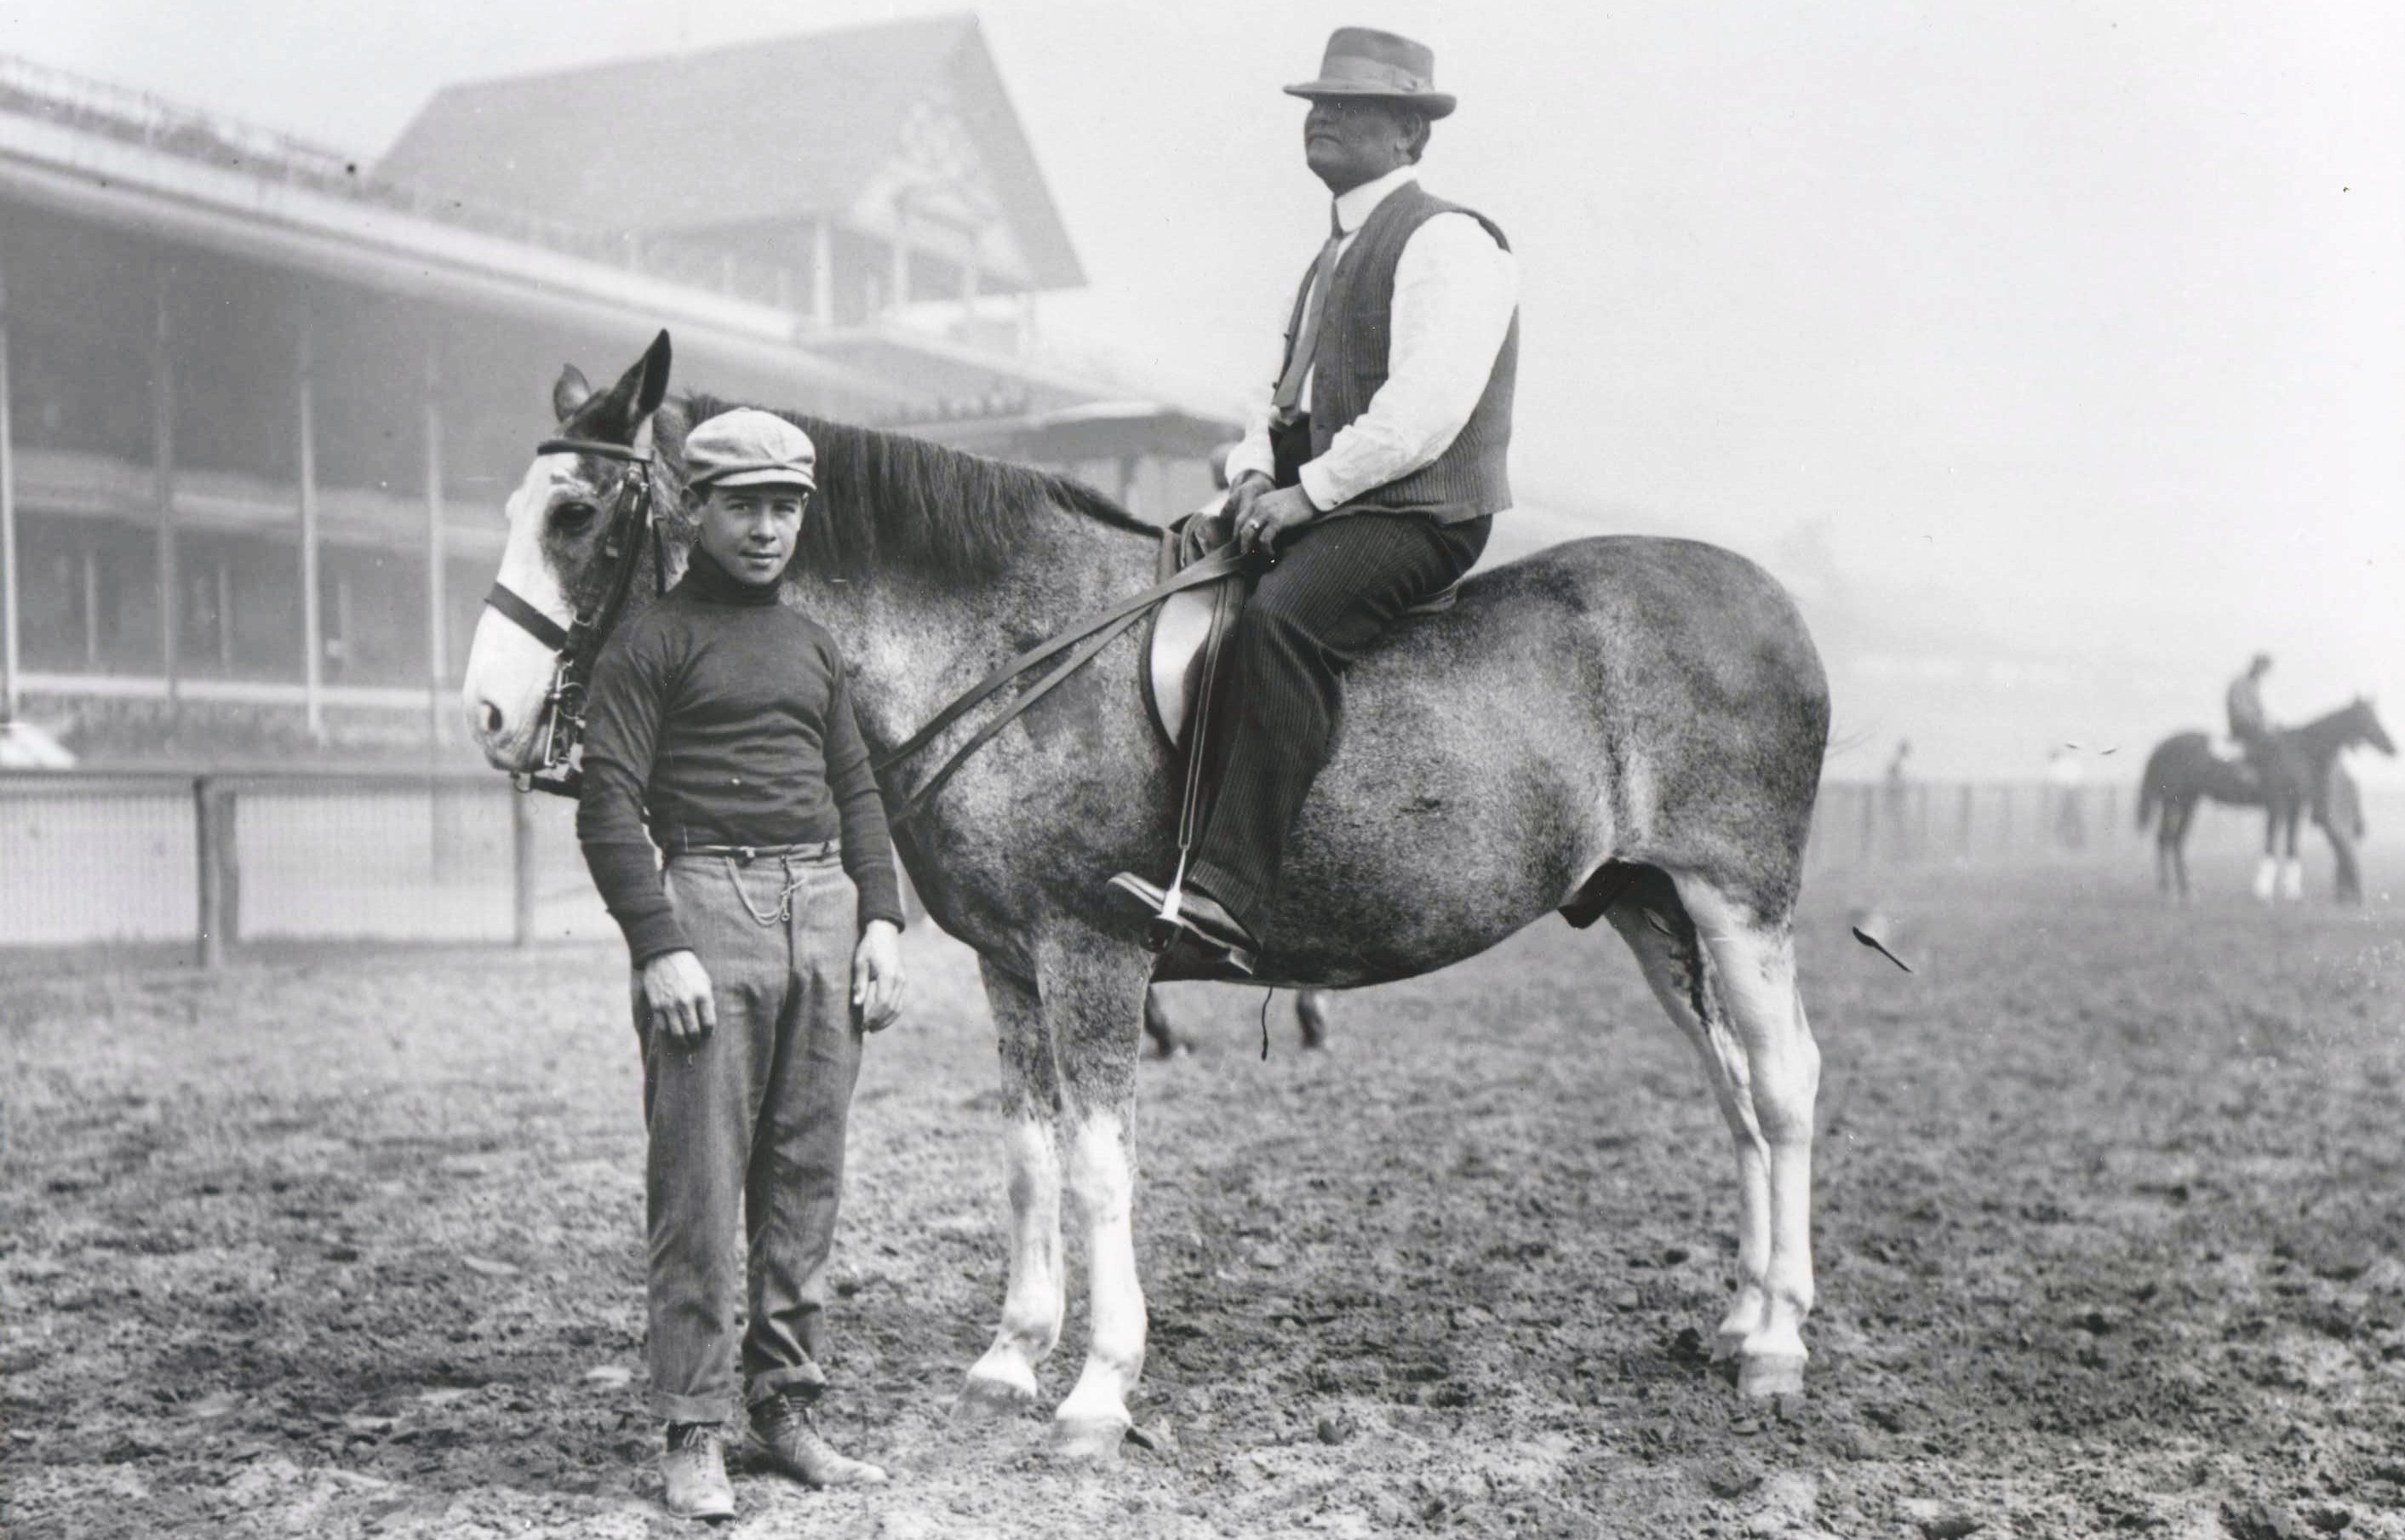 Jockey Joe Notter stands by trainer James G. Rowe, Sr. on horseback (Keeneland Library Cook Collection/Museum Collection)